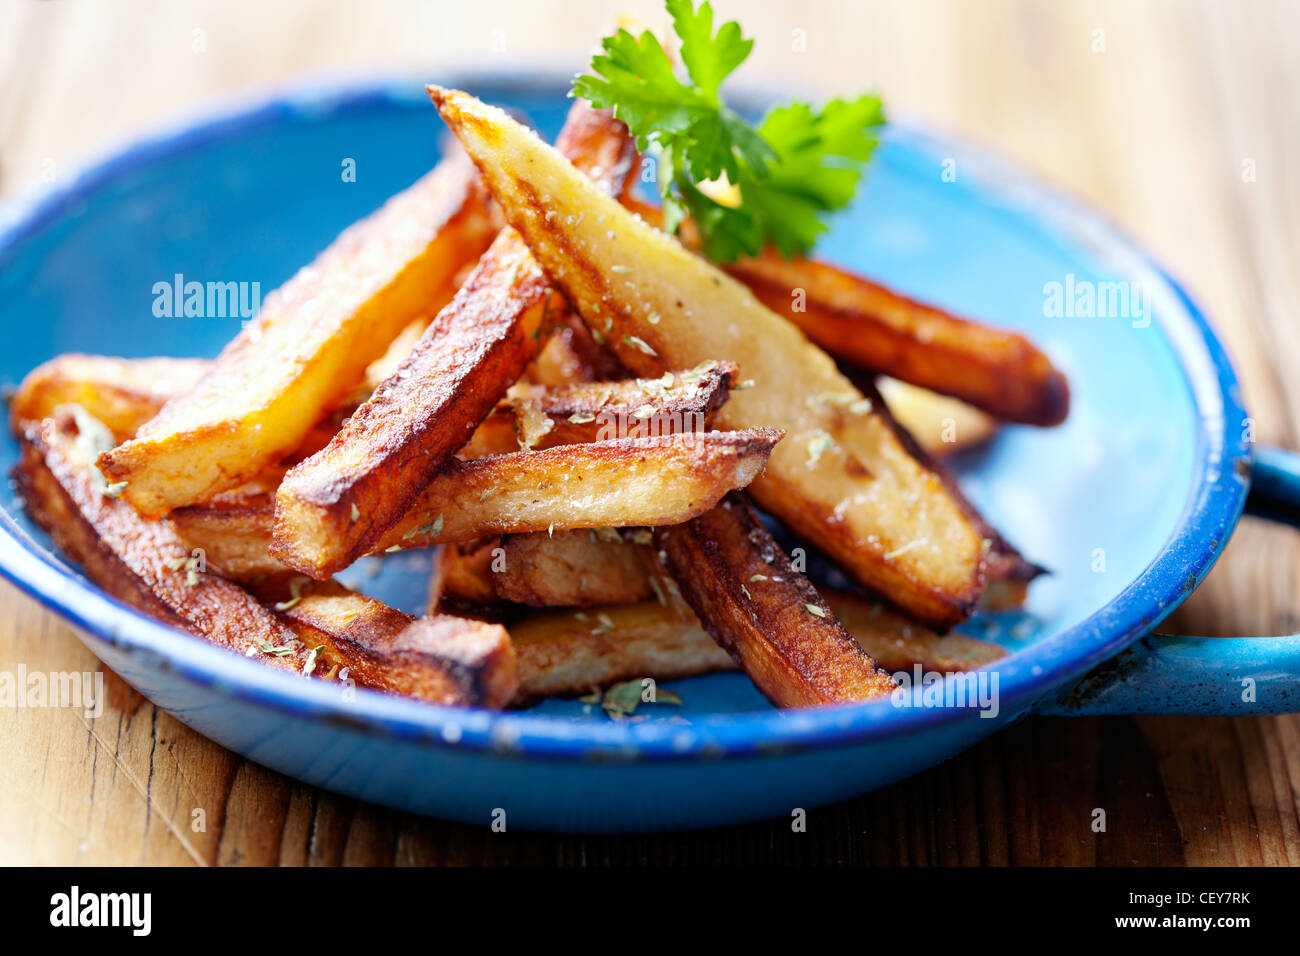 chips - Stock Image